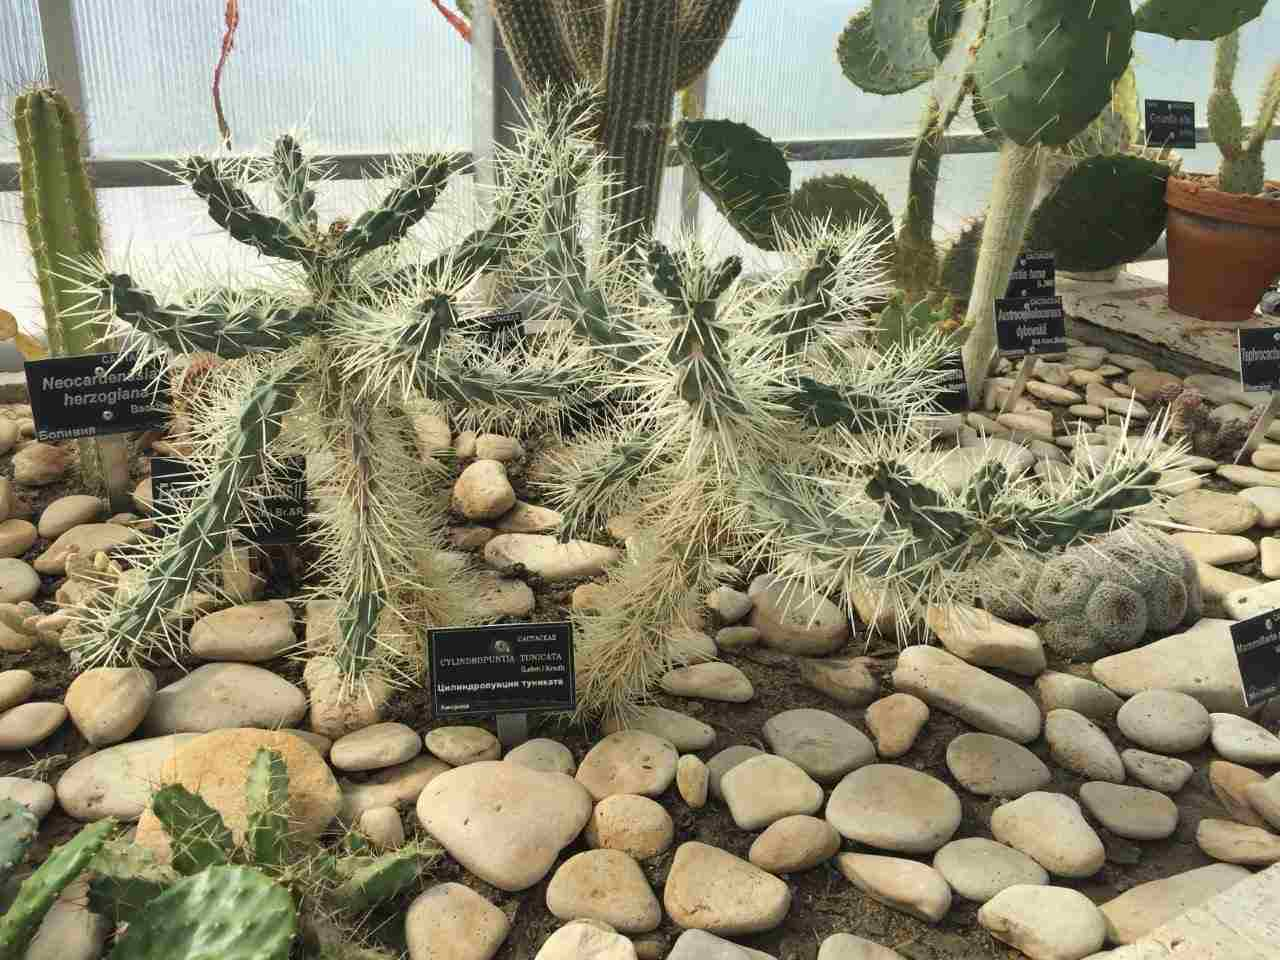 Cylindropuntia tunicata, the sheathed cholla, in the glass house